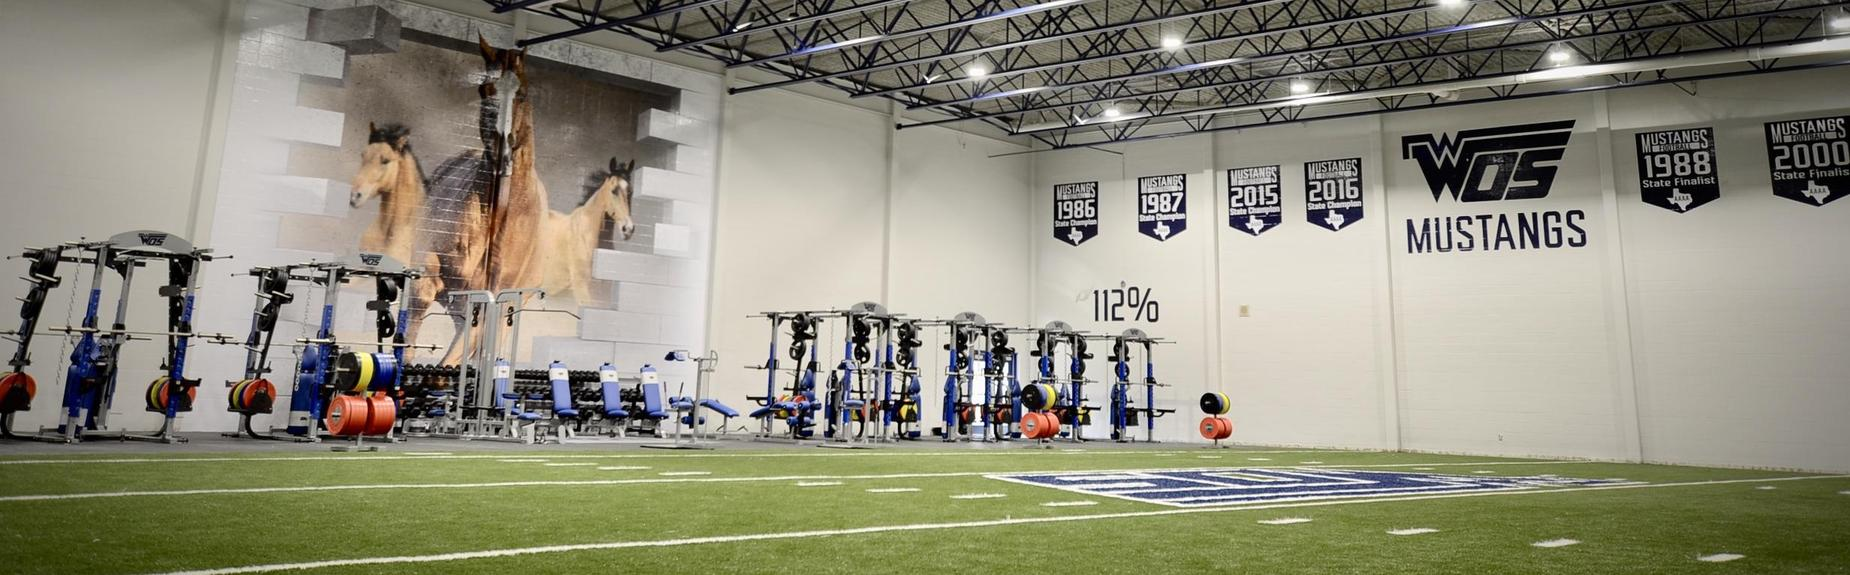 WOSHS New Weight Room